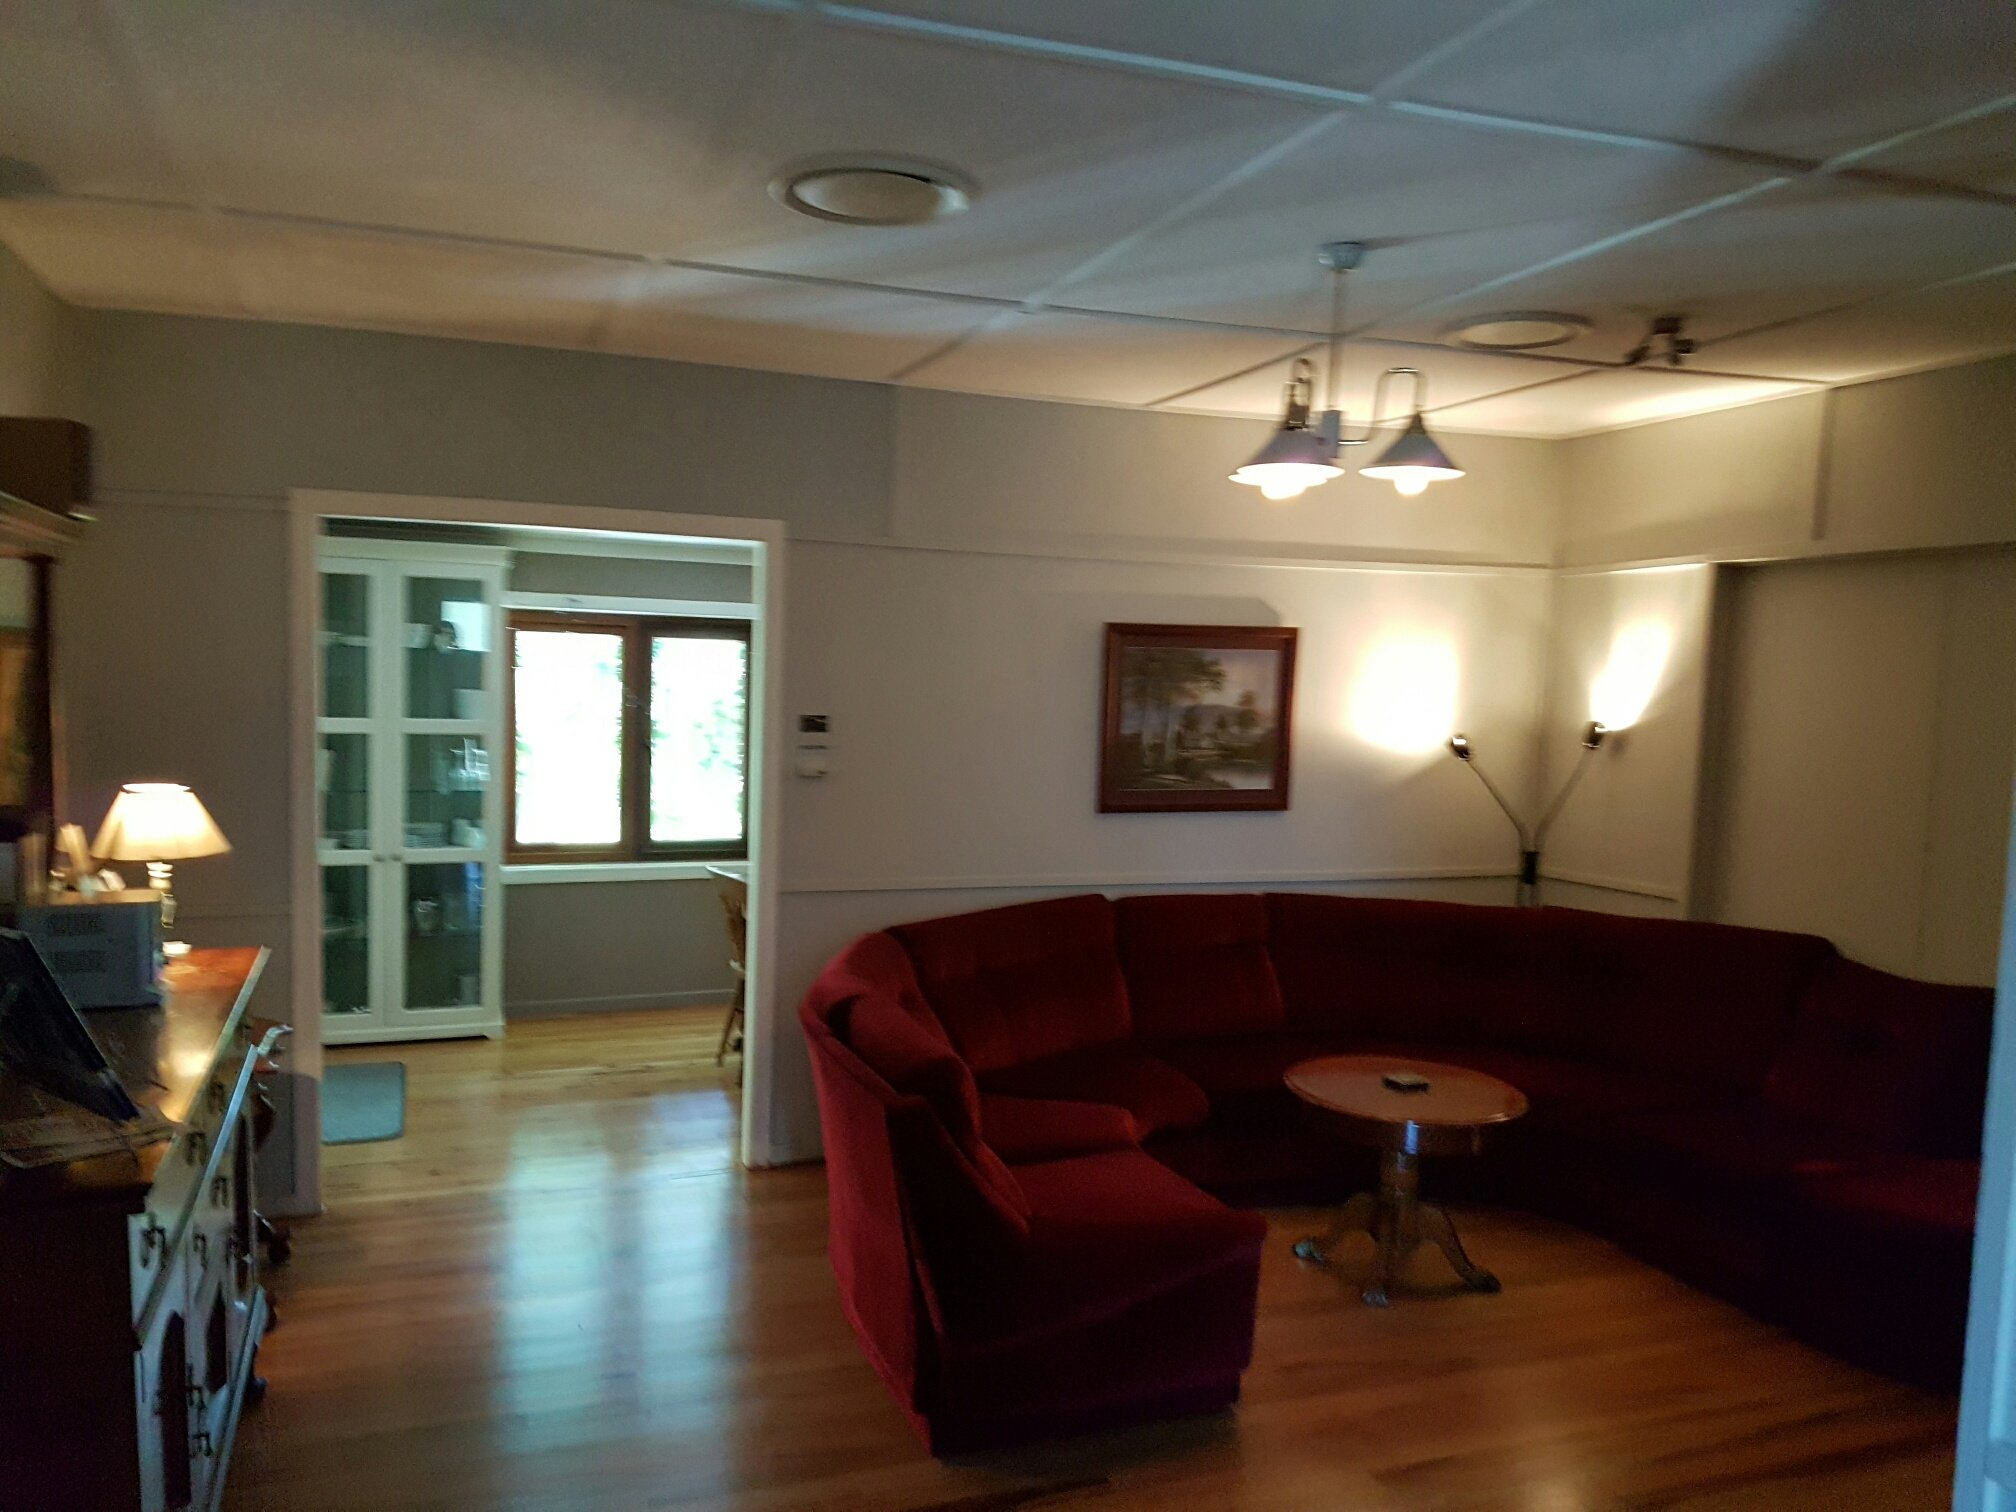 Interior view of the lounge room